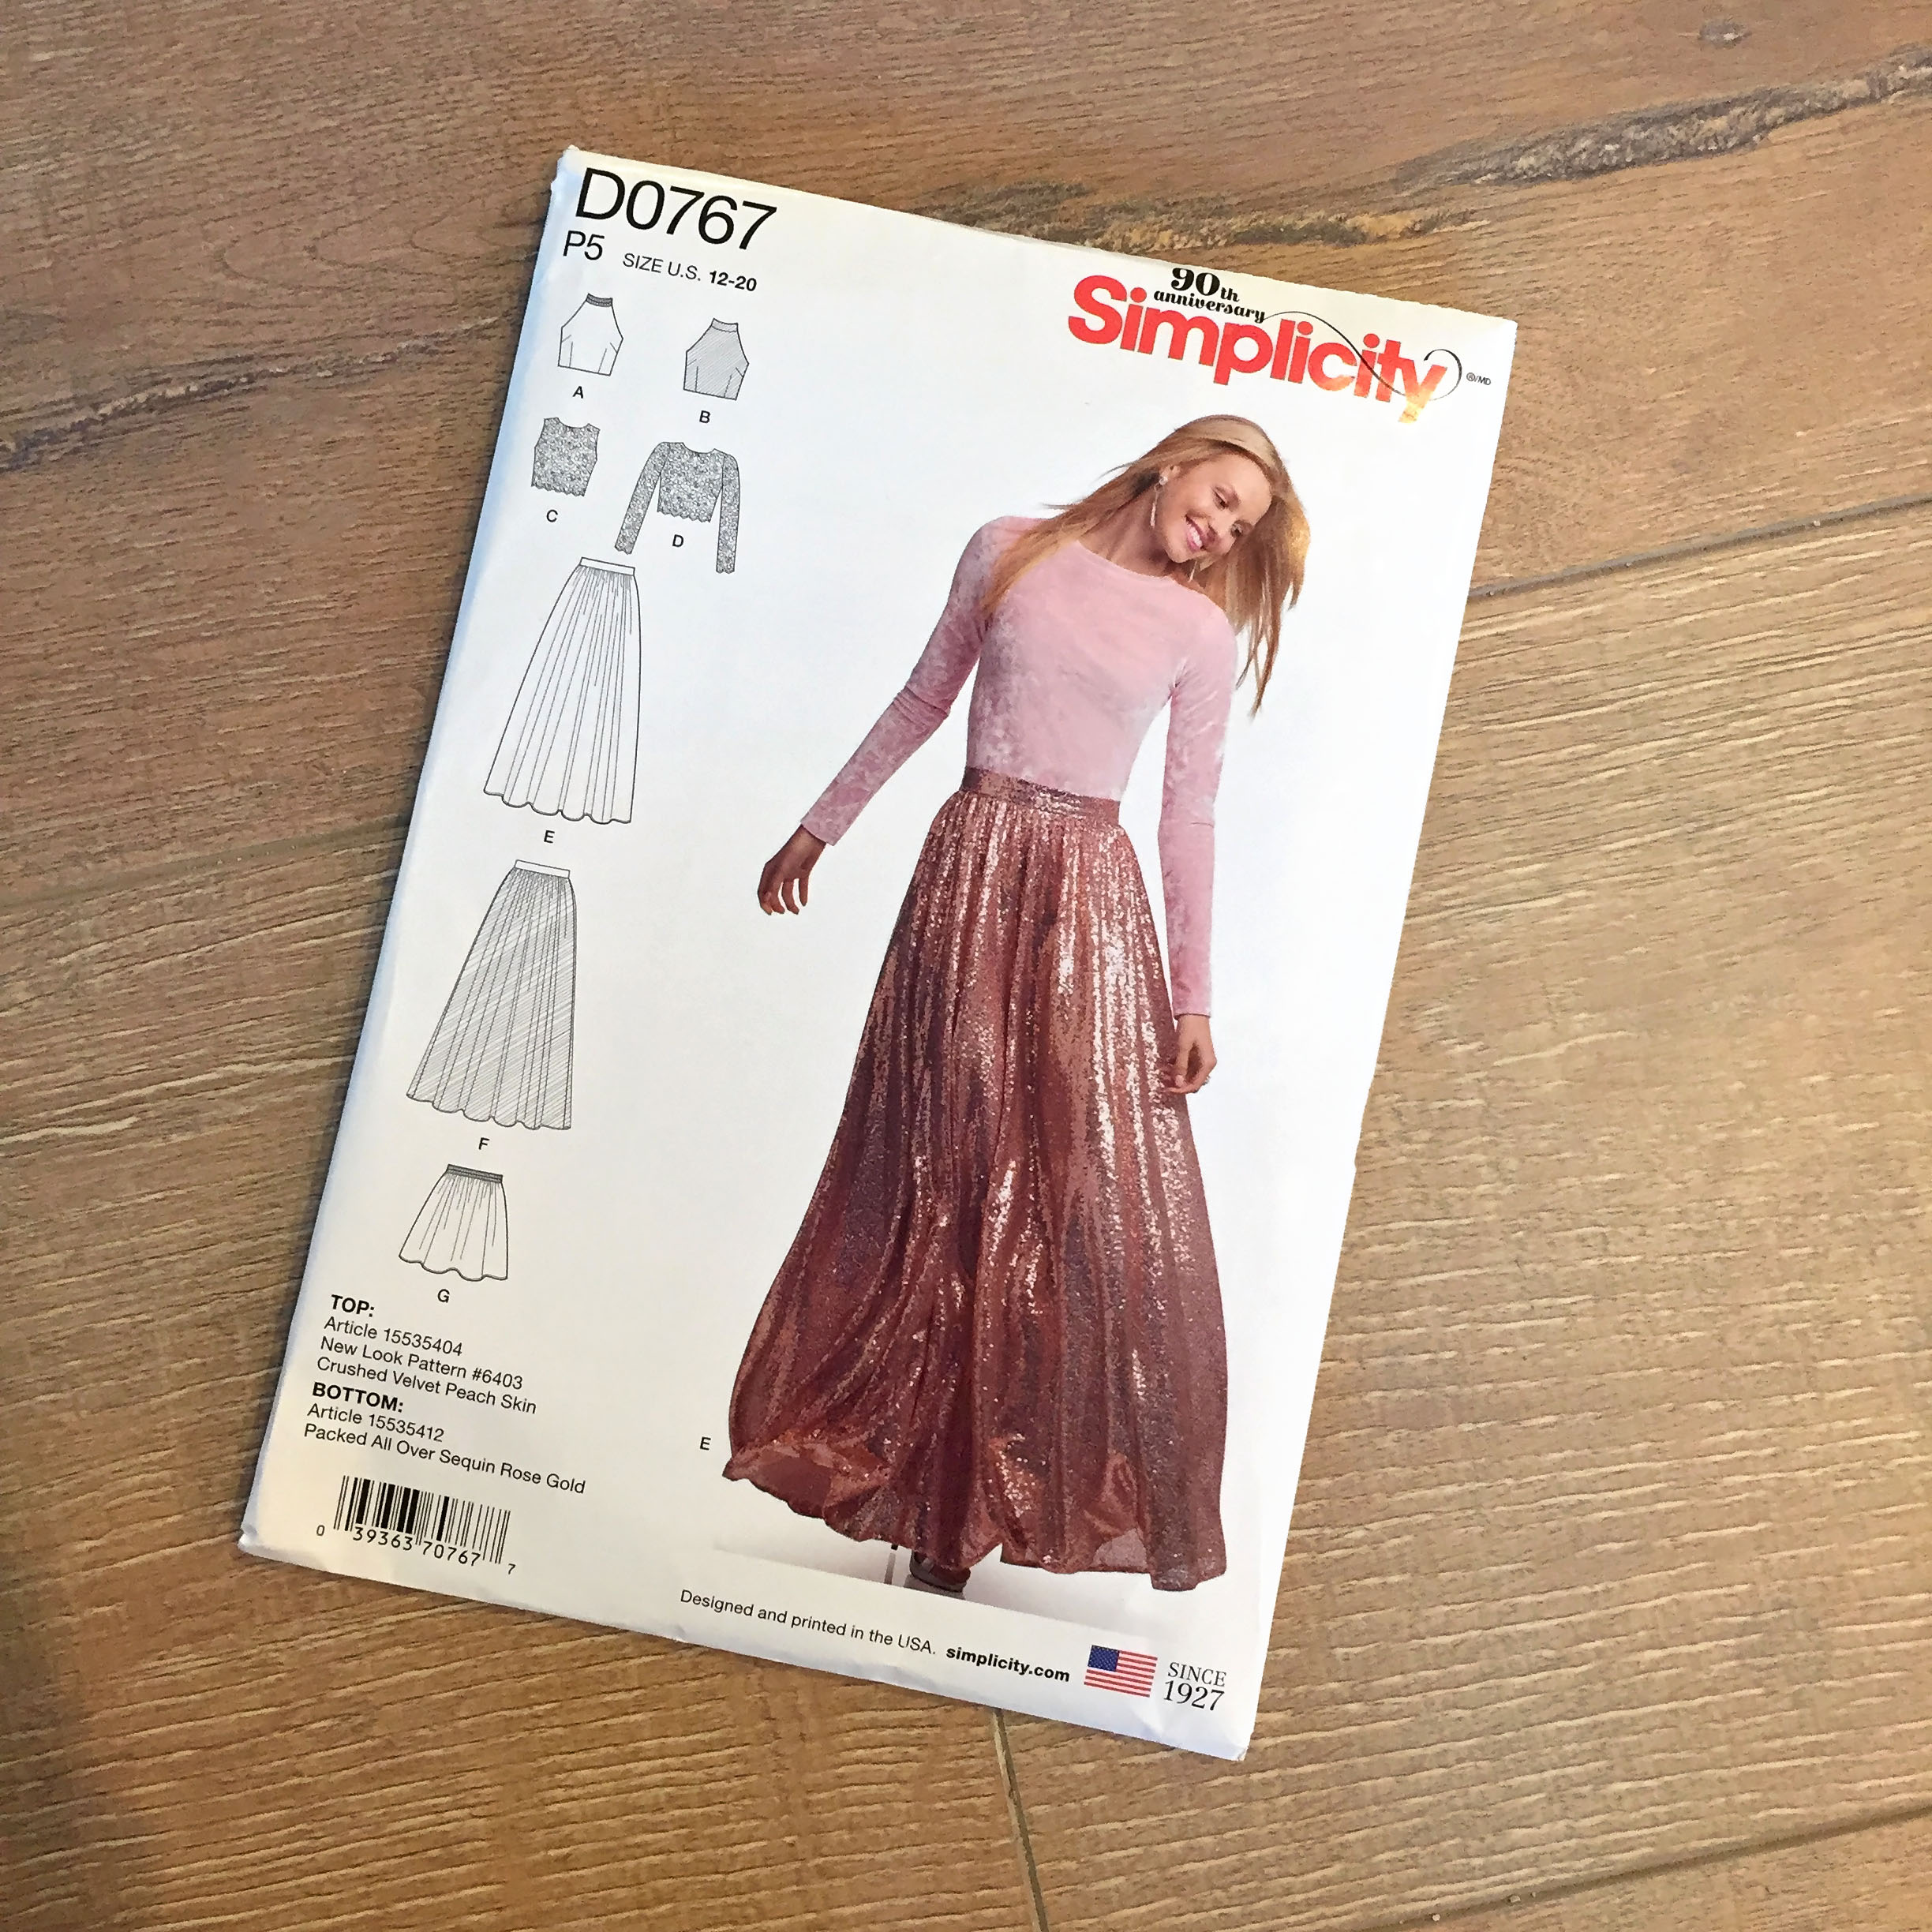 Simplicity D0767 Pattern Review